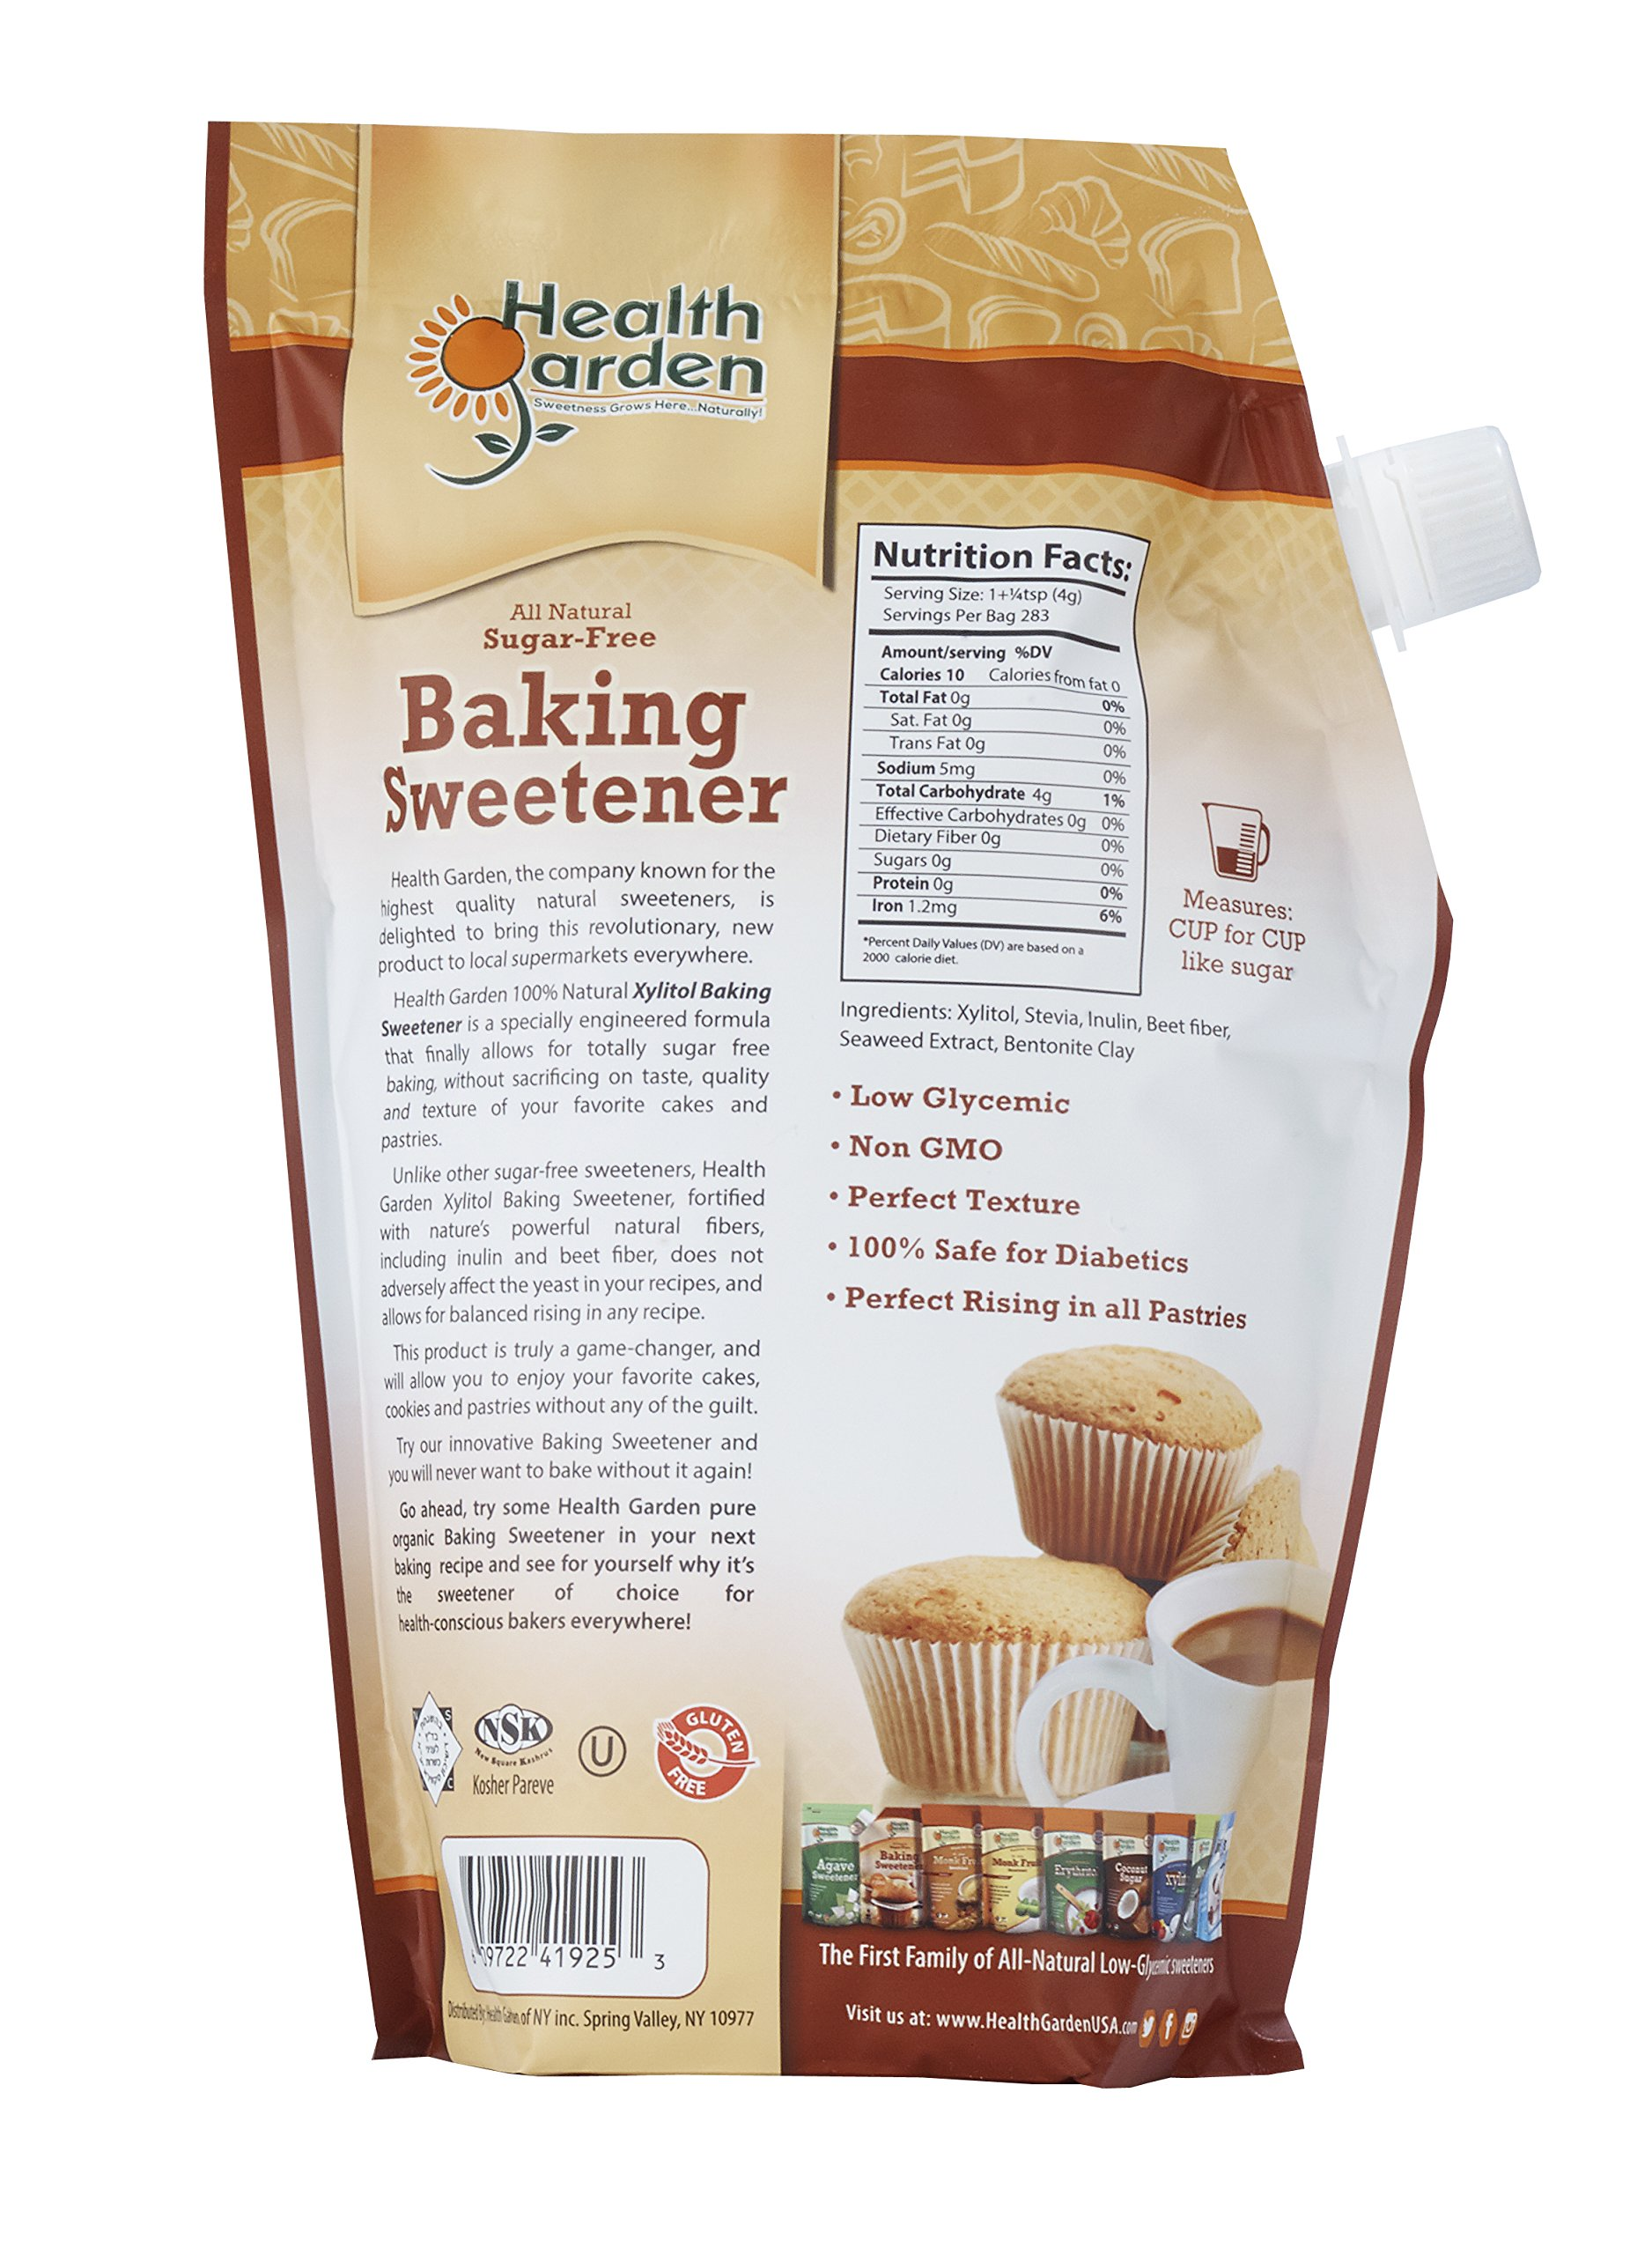 Sugar Free Xylitol Baking Sweetener, All Natural, Non GMO Sugar Replacement - 35 oz. - By Health Garden by Health Garden (Image #2)